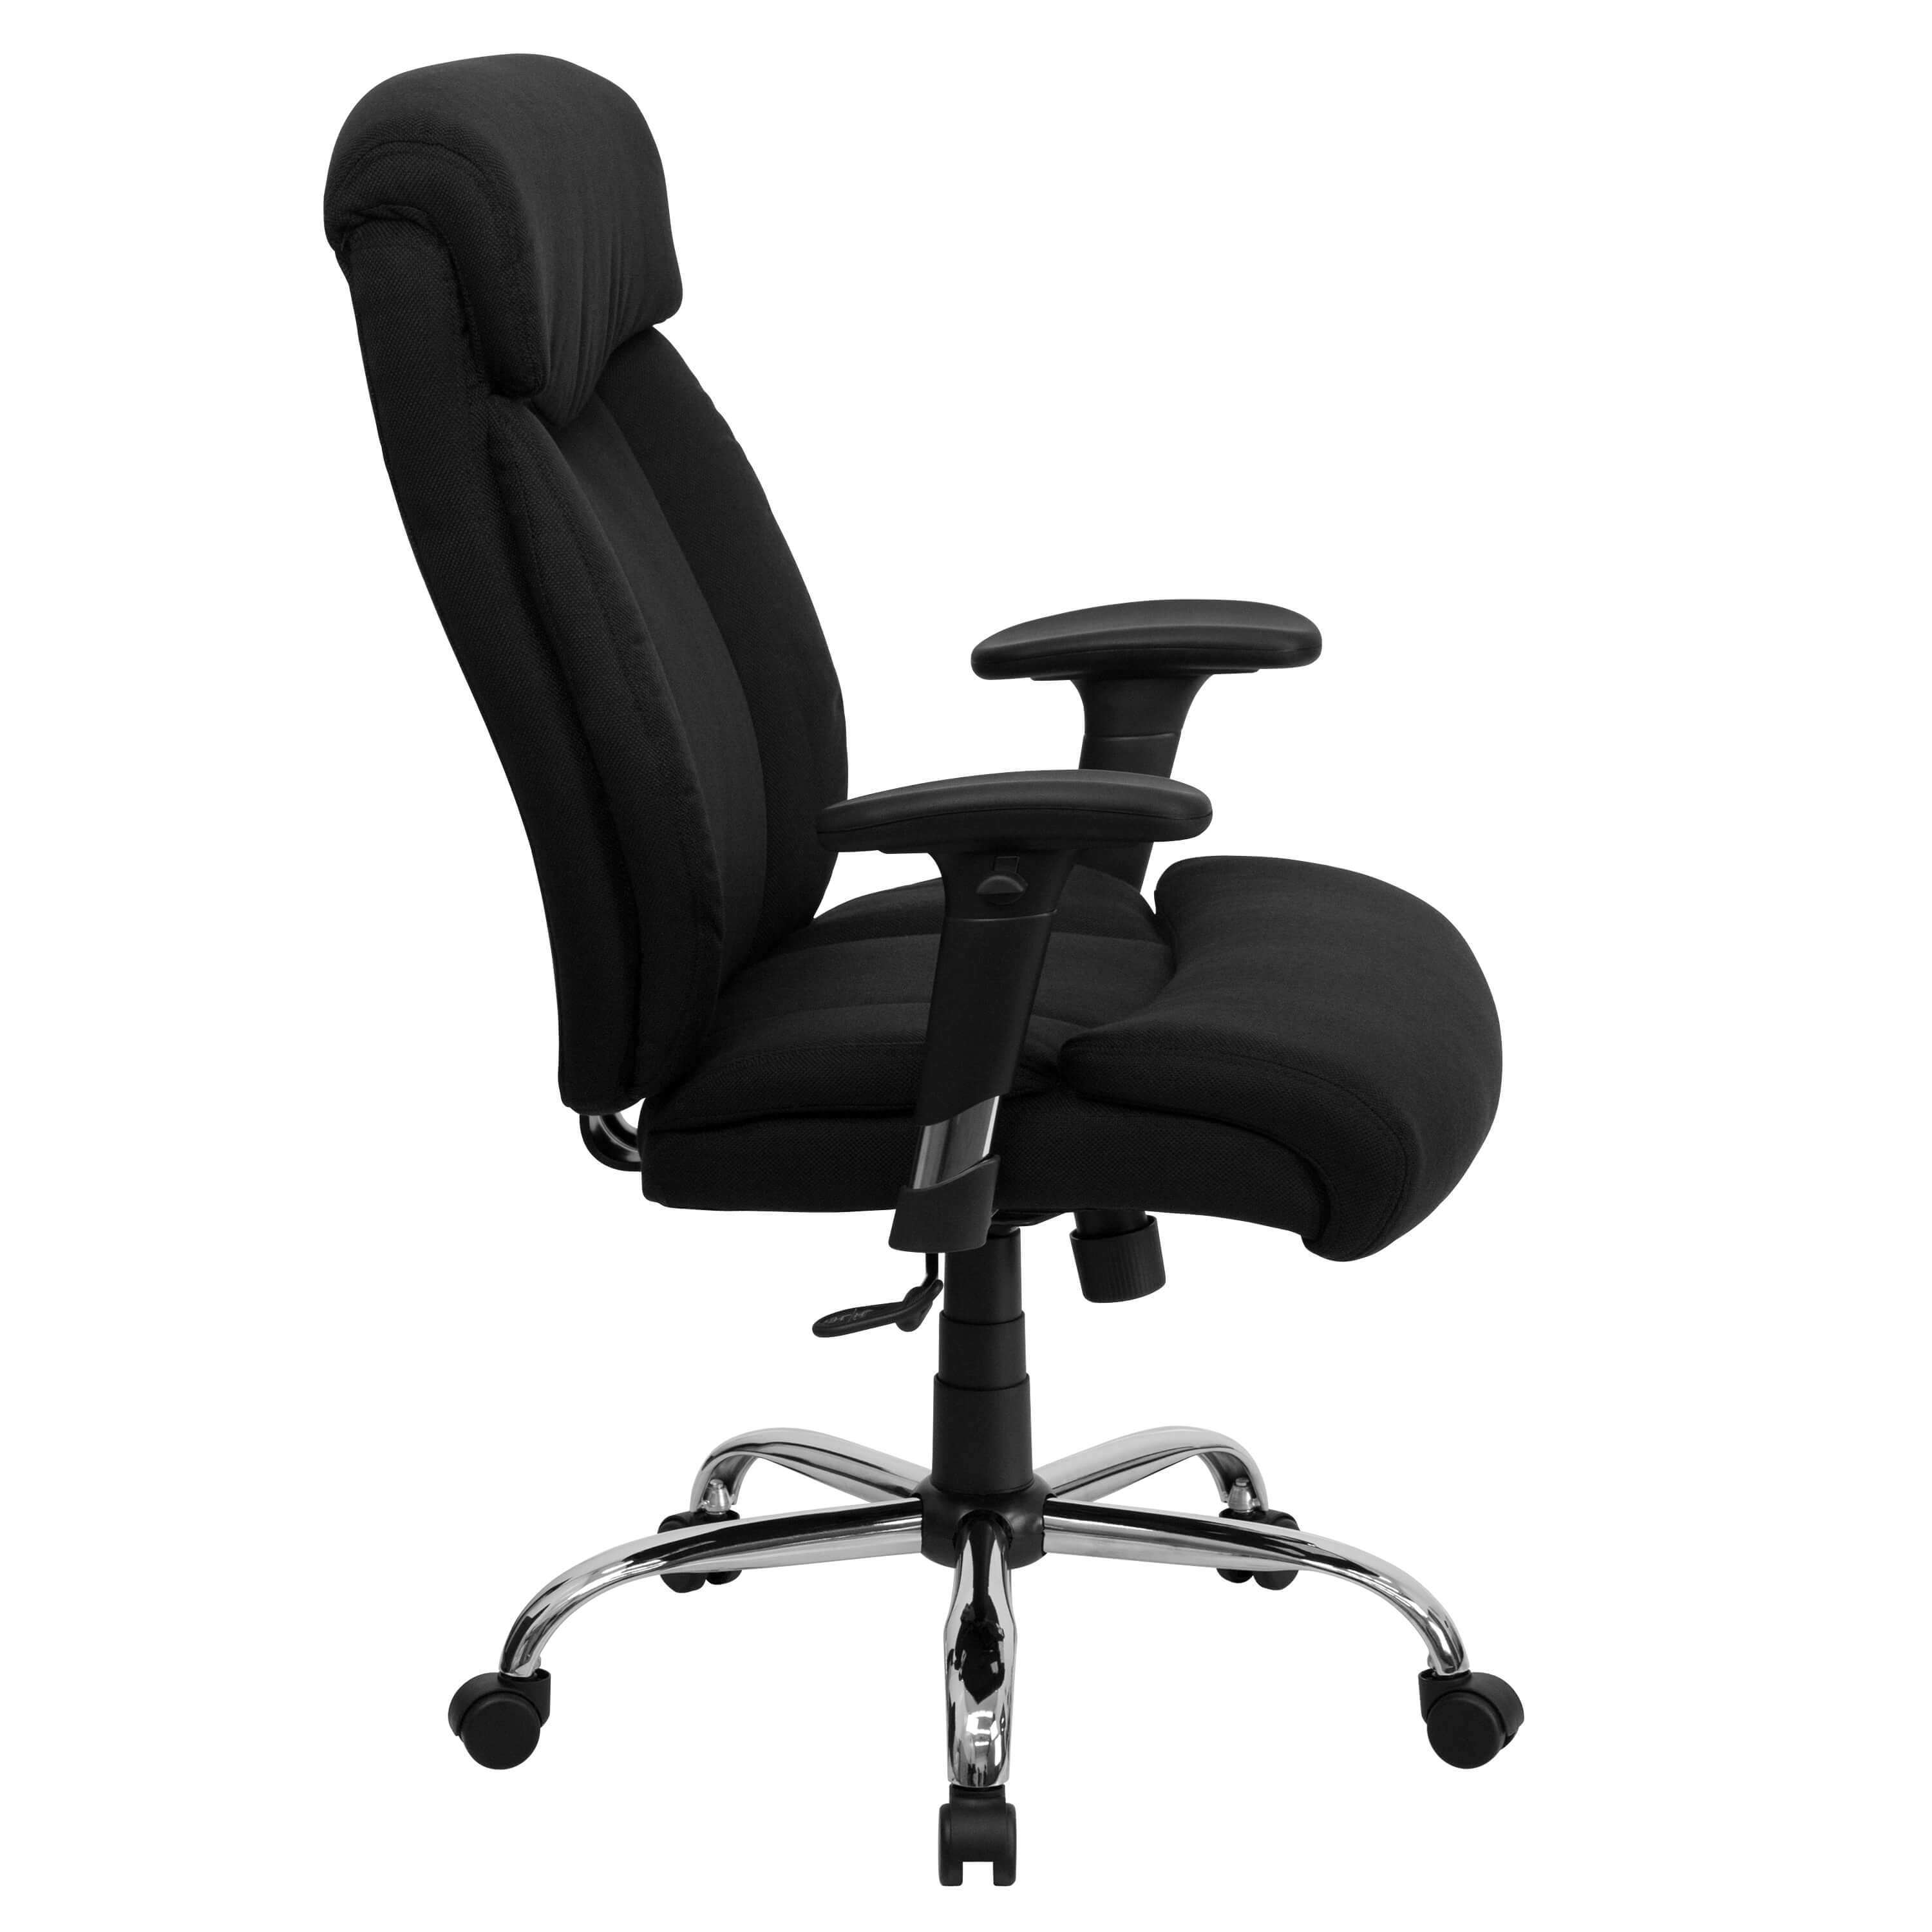 Heavy duty ergonomic office chairs side view